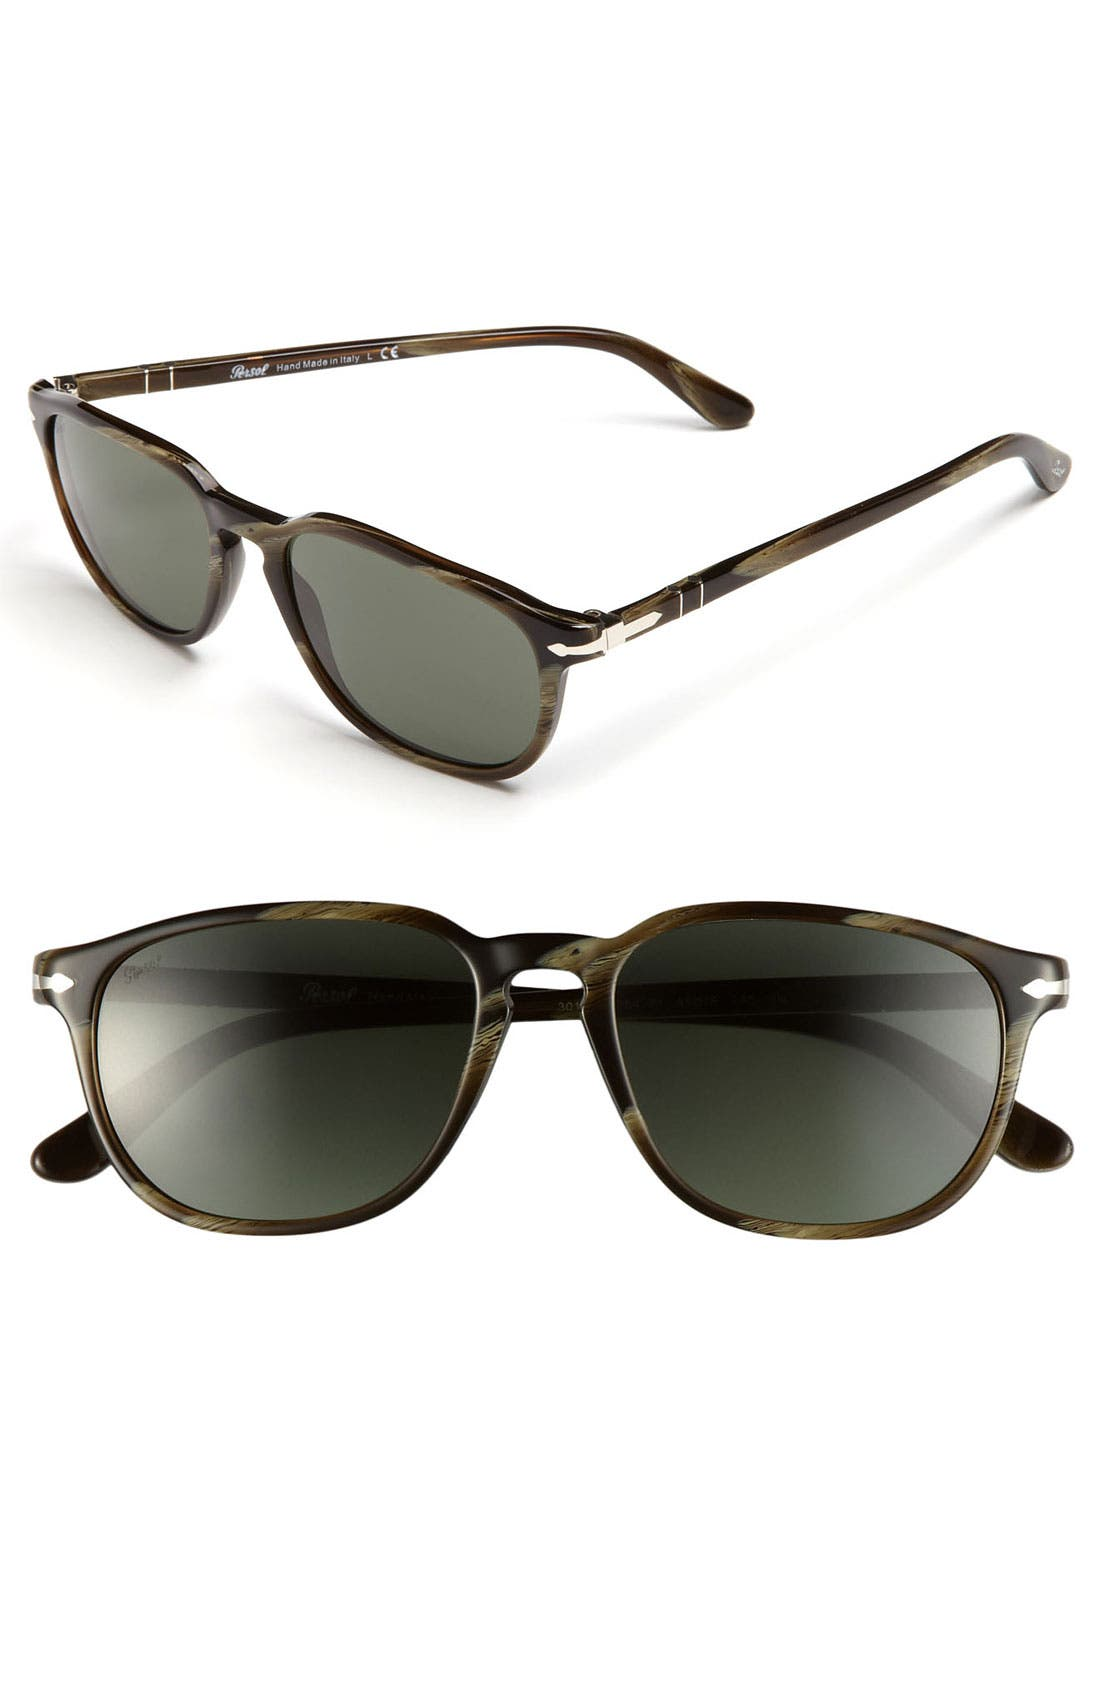 Alternate Image 1 Selected - Persol 52mm Retro Inspired Sunglasses